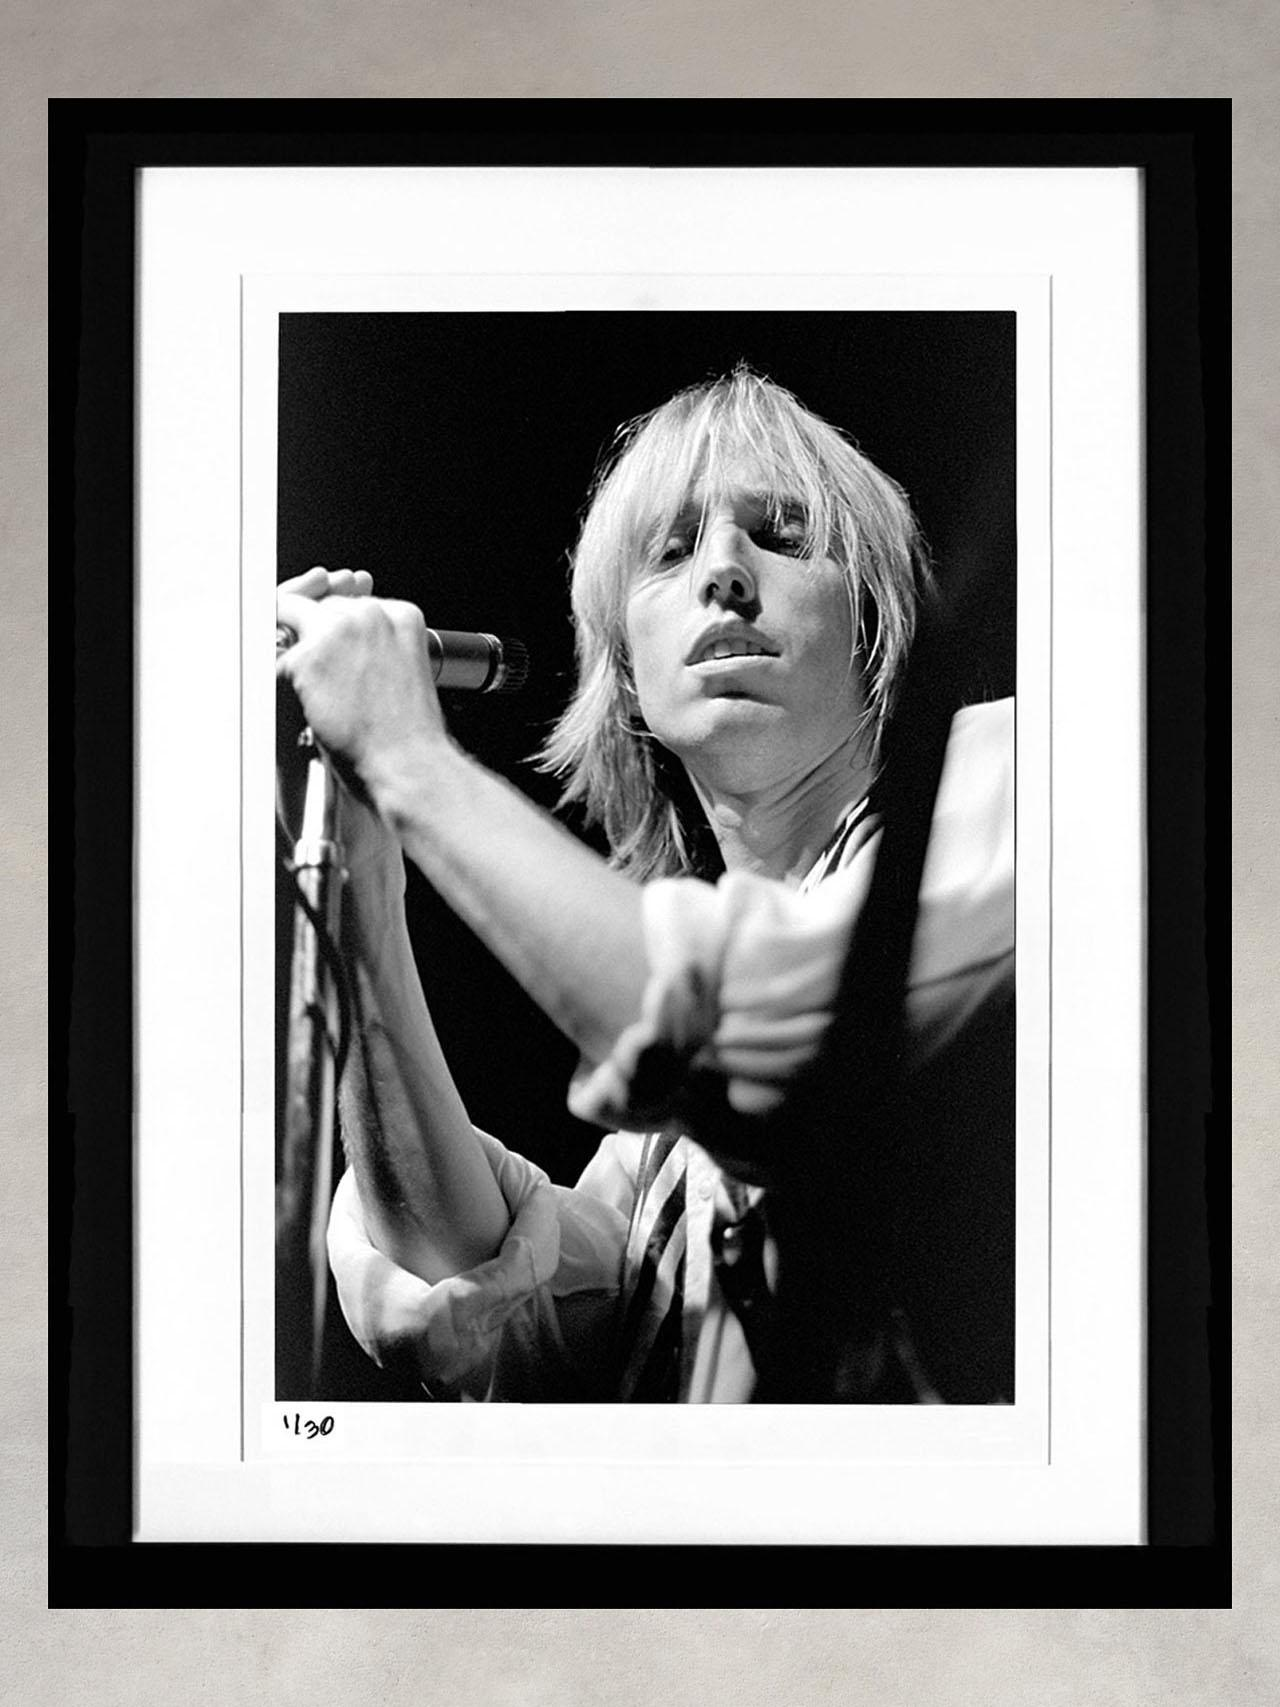 Tom Petty by Ron Pownall